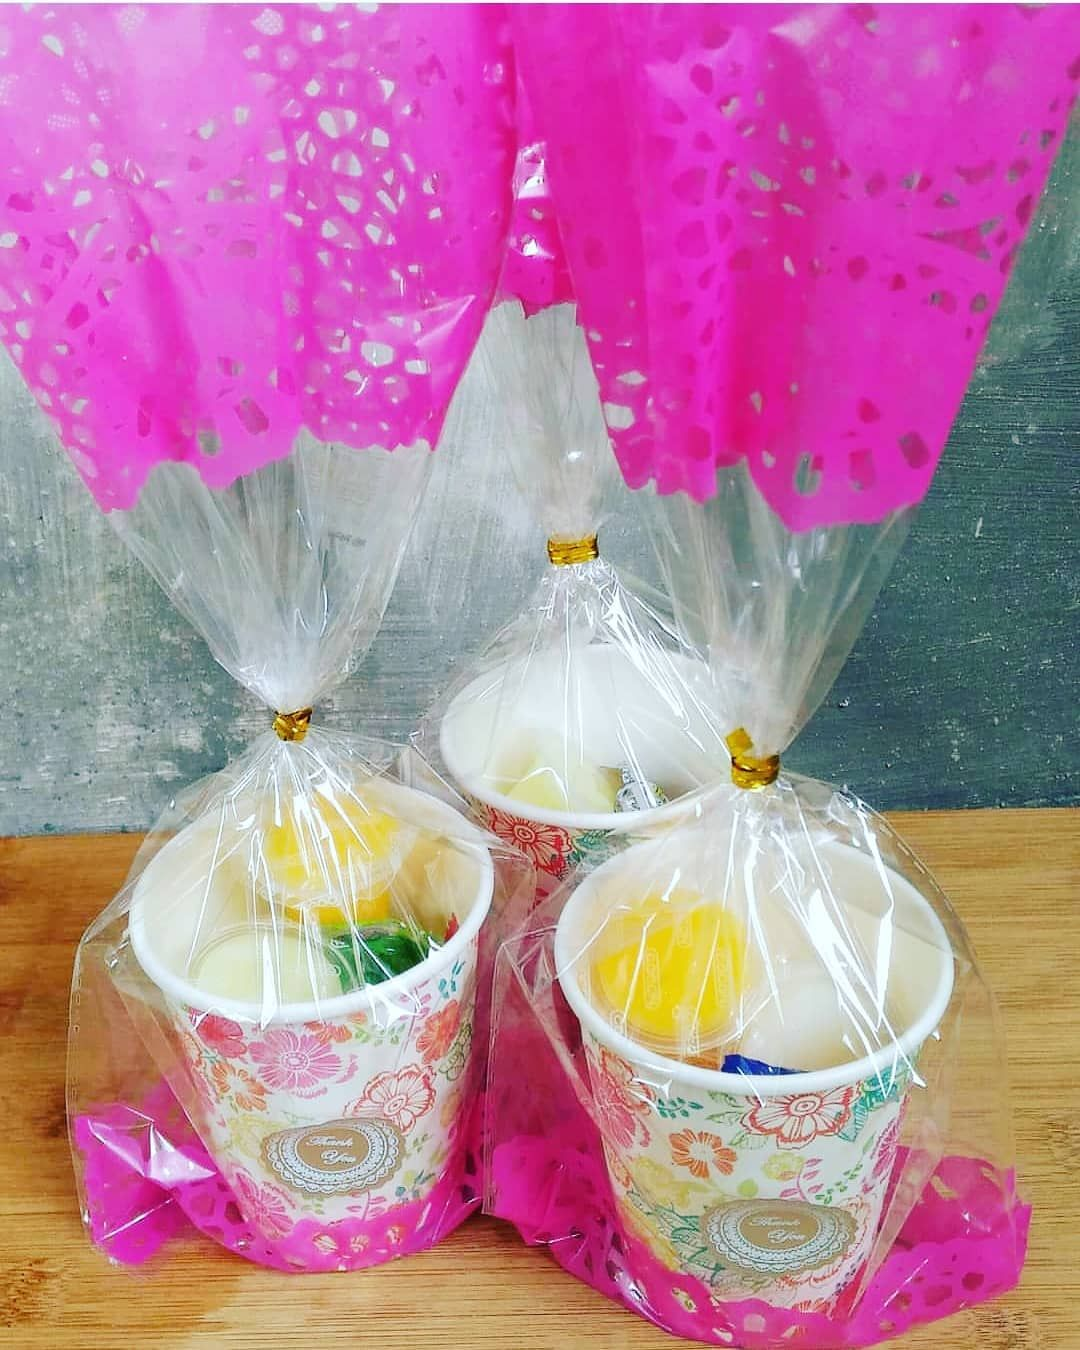 60th Birthday Gift Ideas For Mom India And Here Is Something Very Budgeted Give Away Can Be Altered According To Once S Preference Chaiglass Wrapped C Birthday Gifts Corporate Gifts Party Gifts